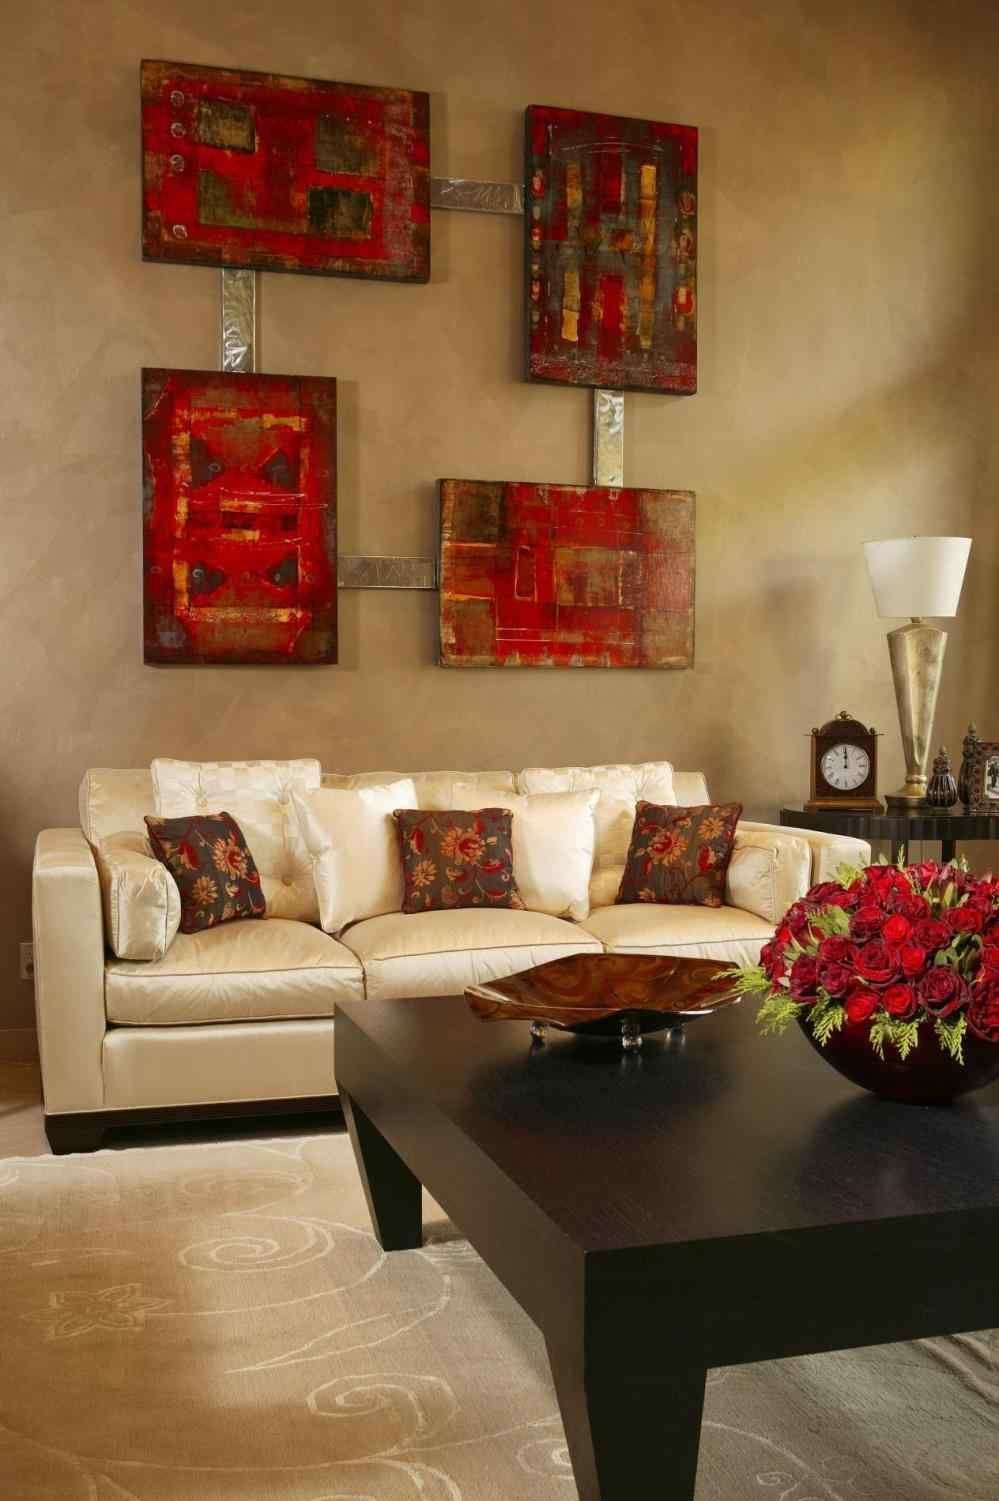 Teal Living Room Ideas - 20+ Astonishing Teal And Gold ...